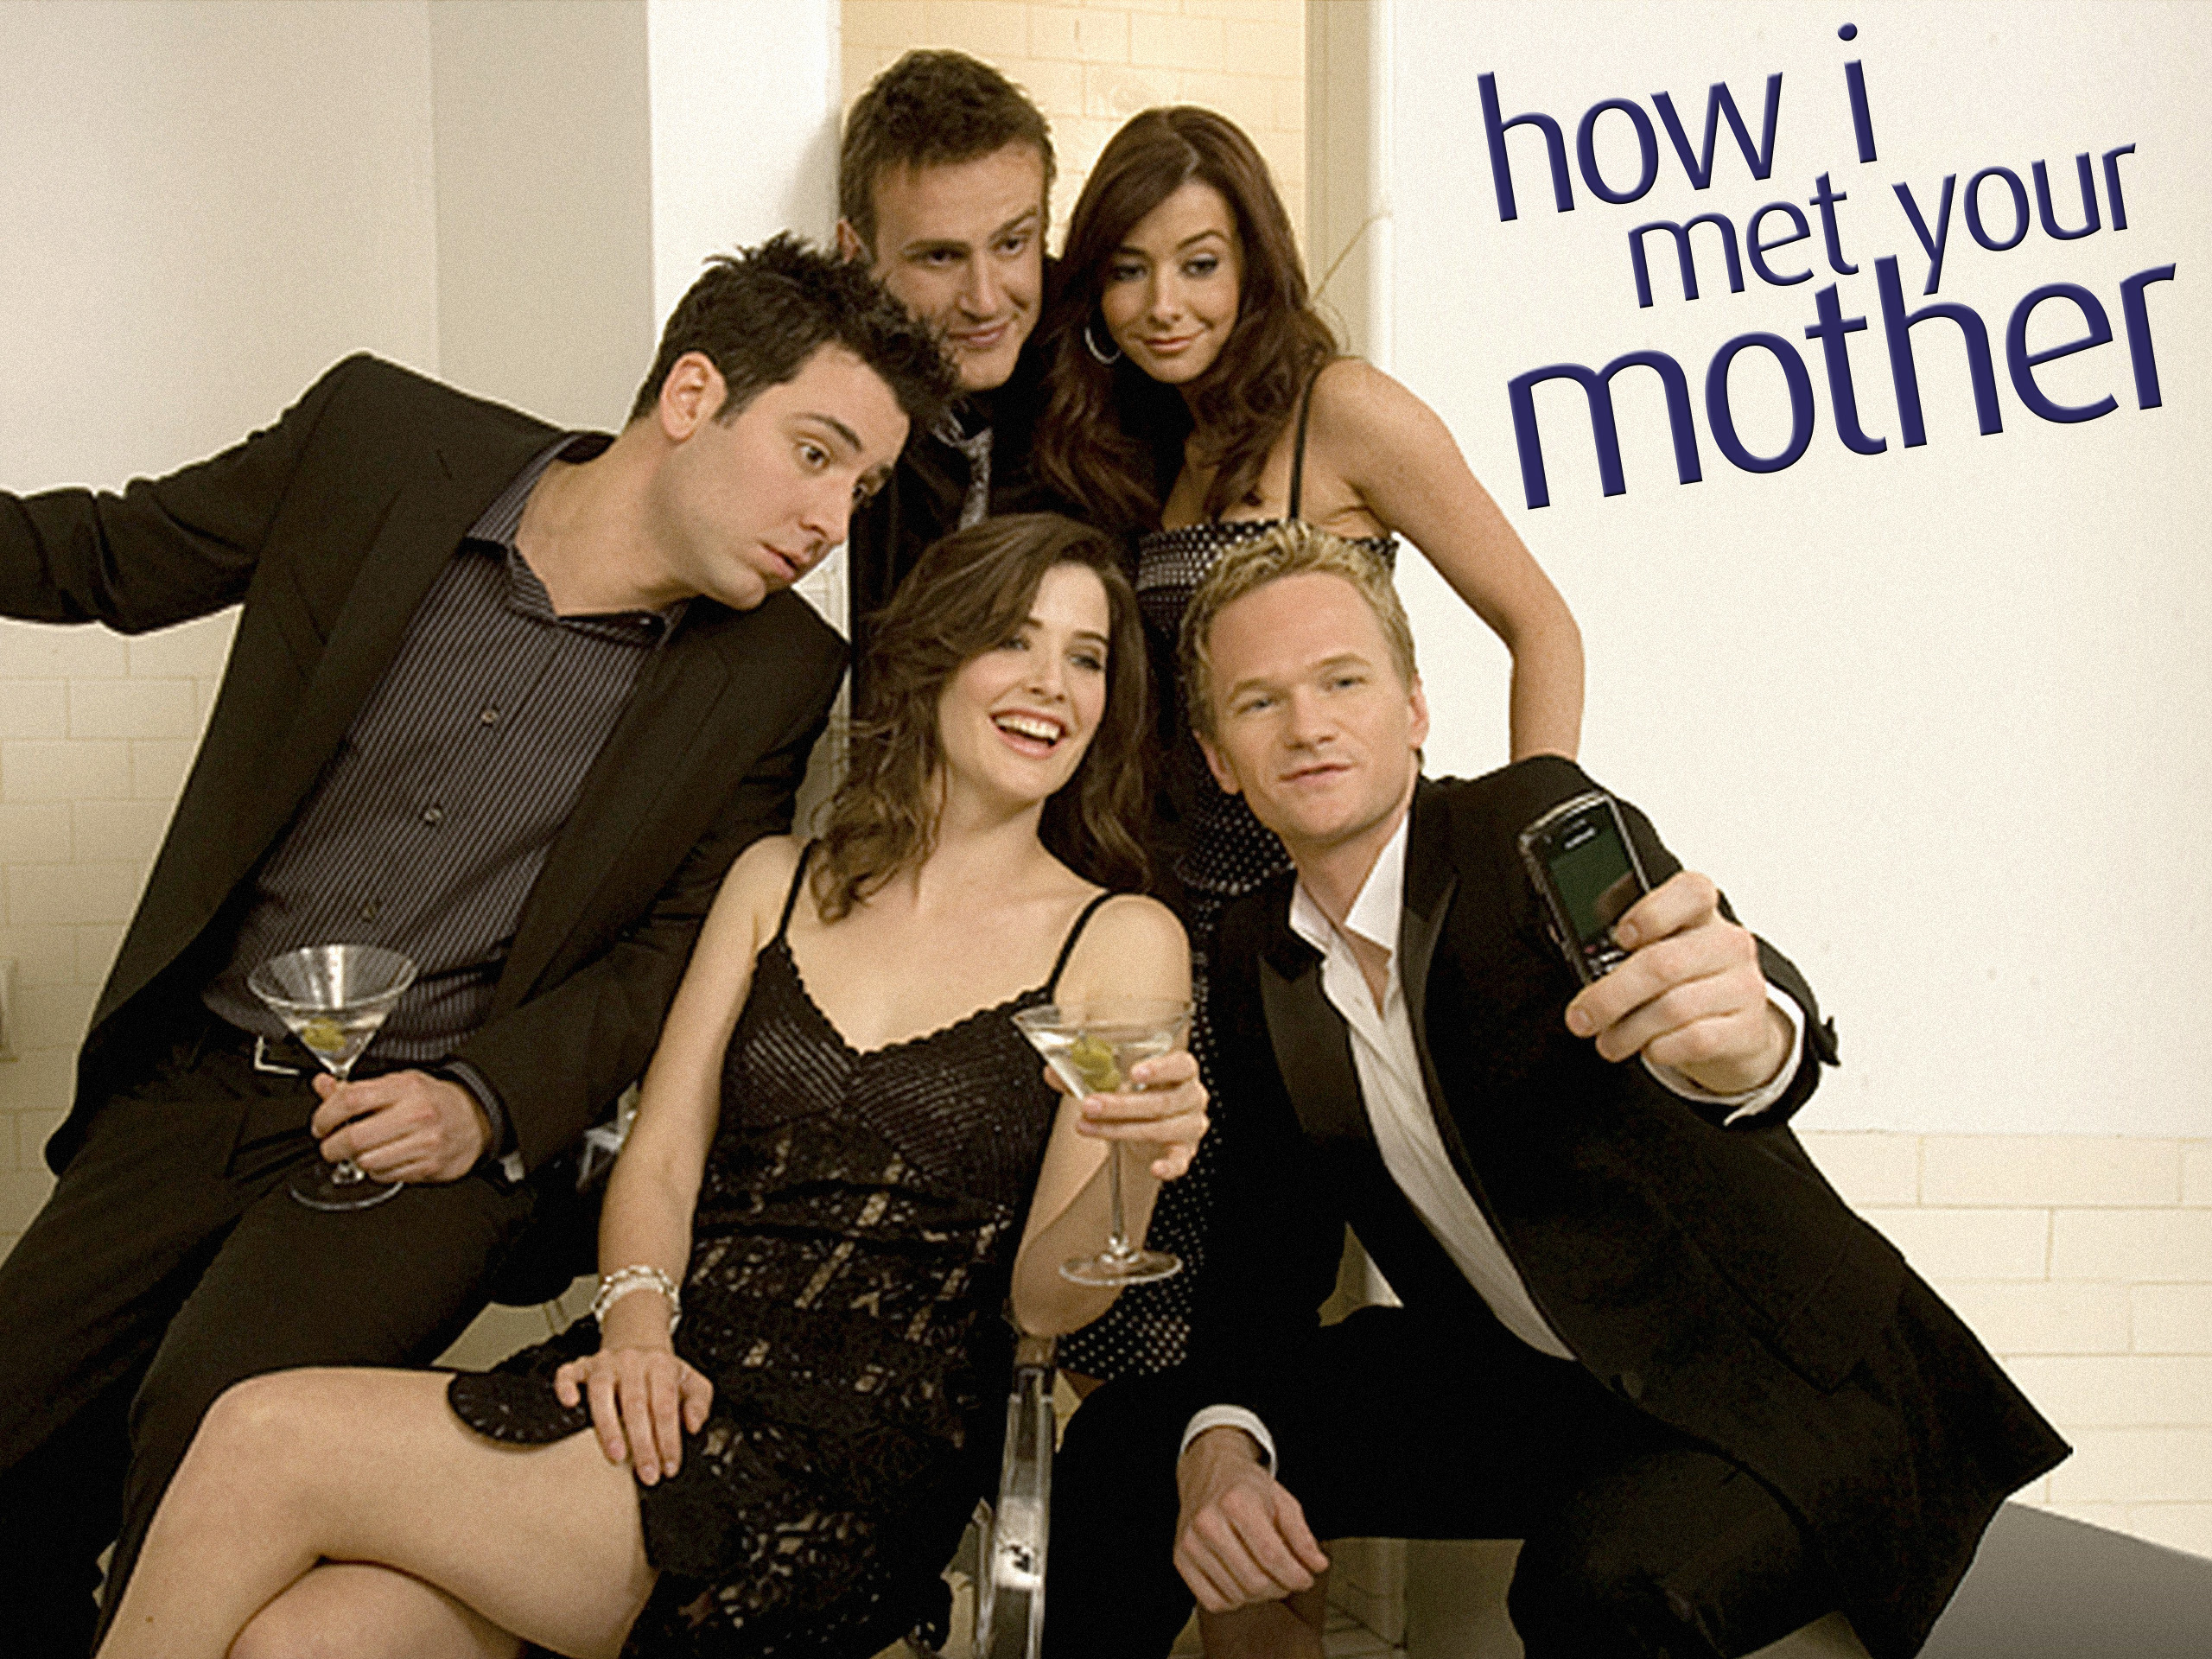 how i met your mother season 8 full episodes download free